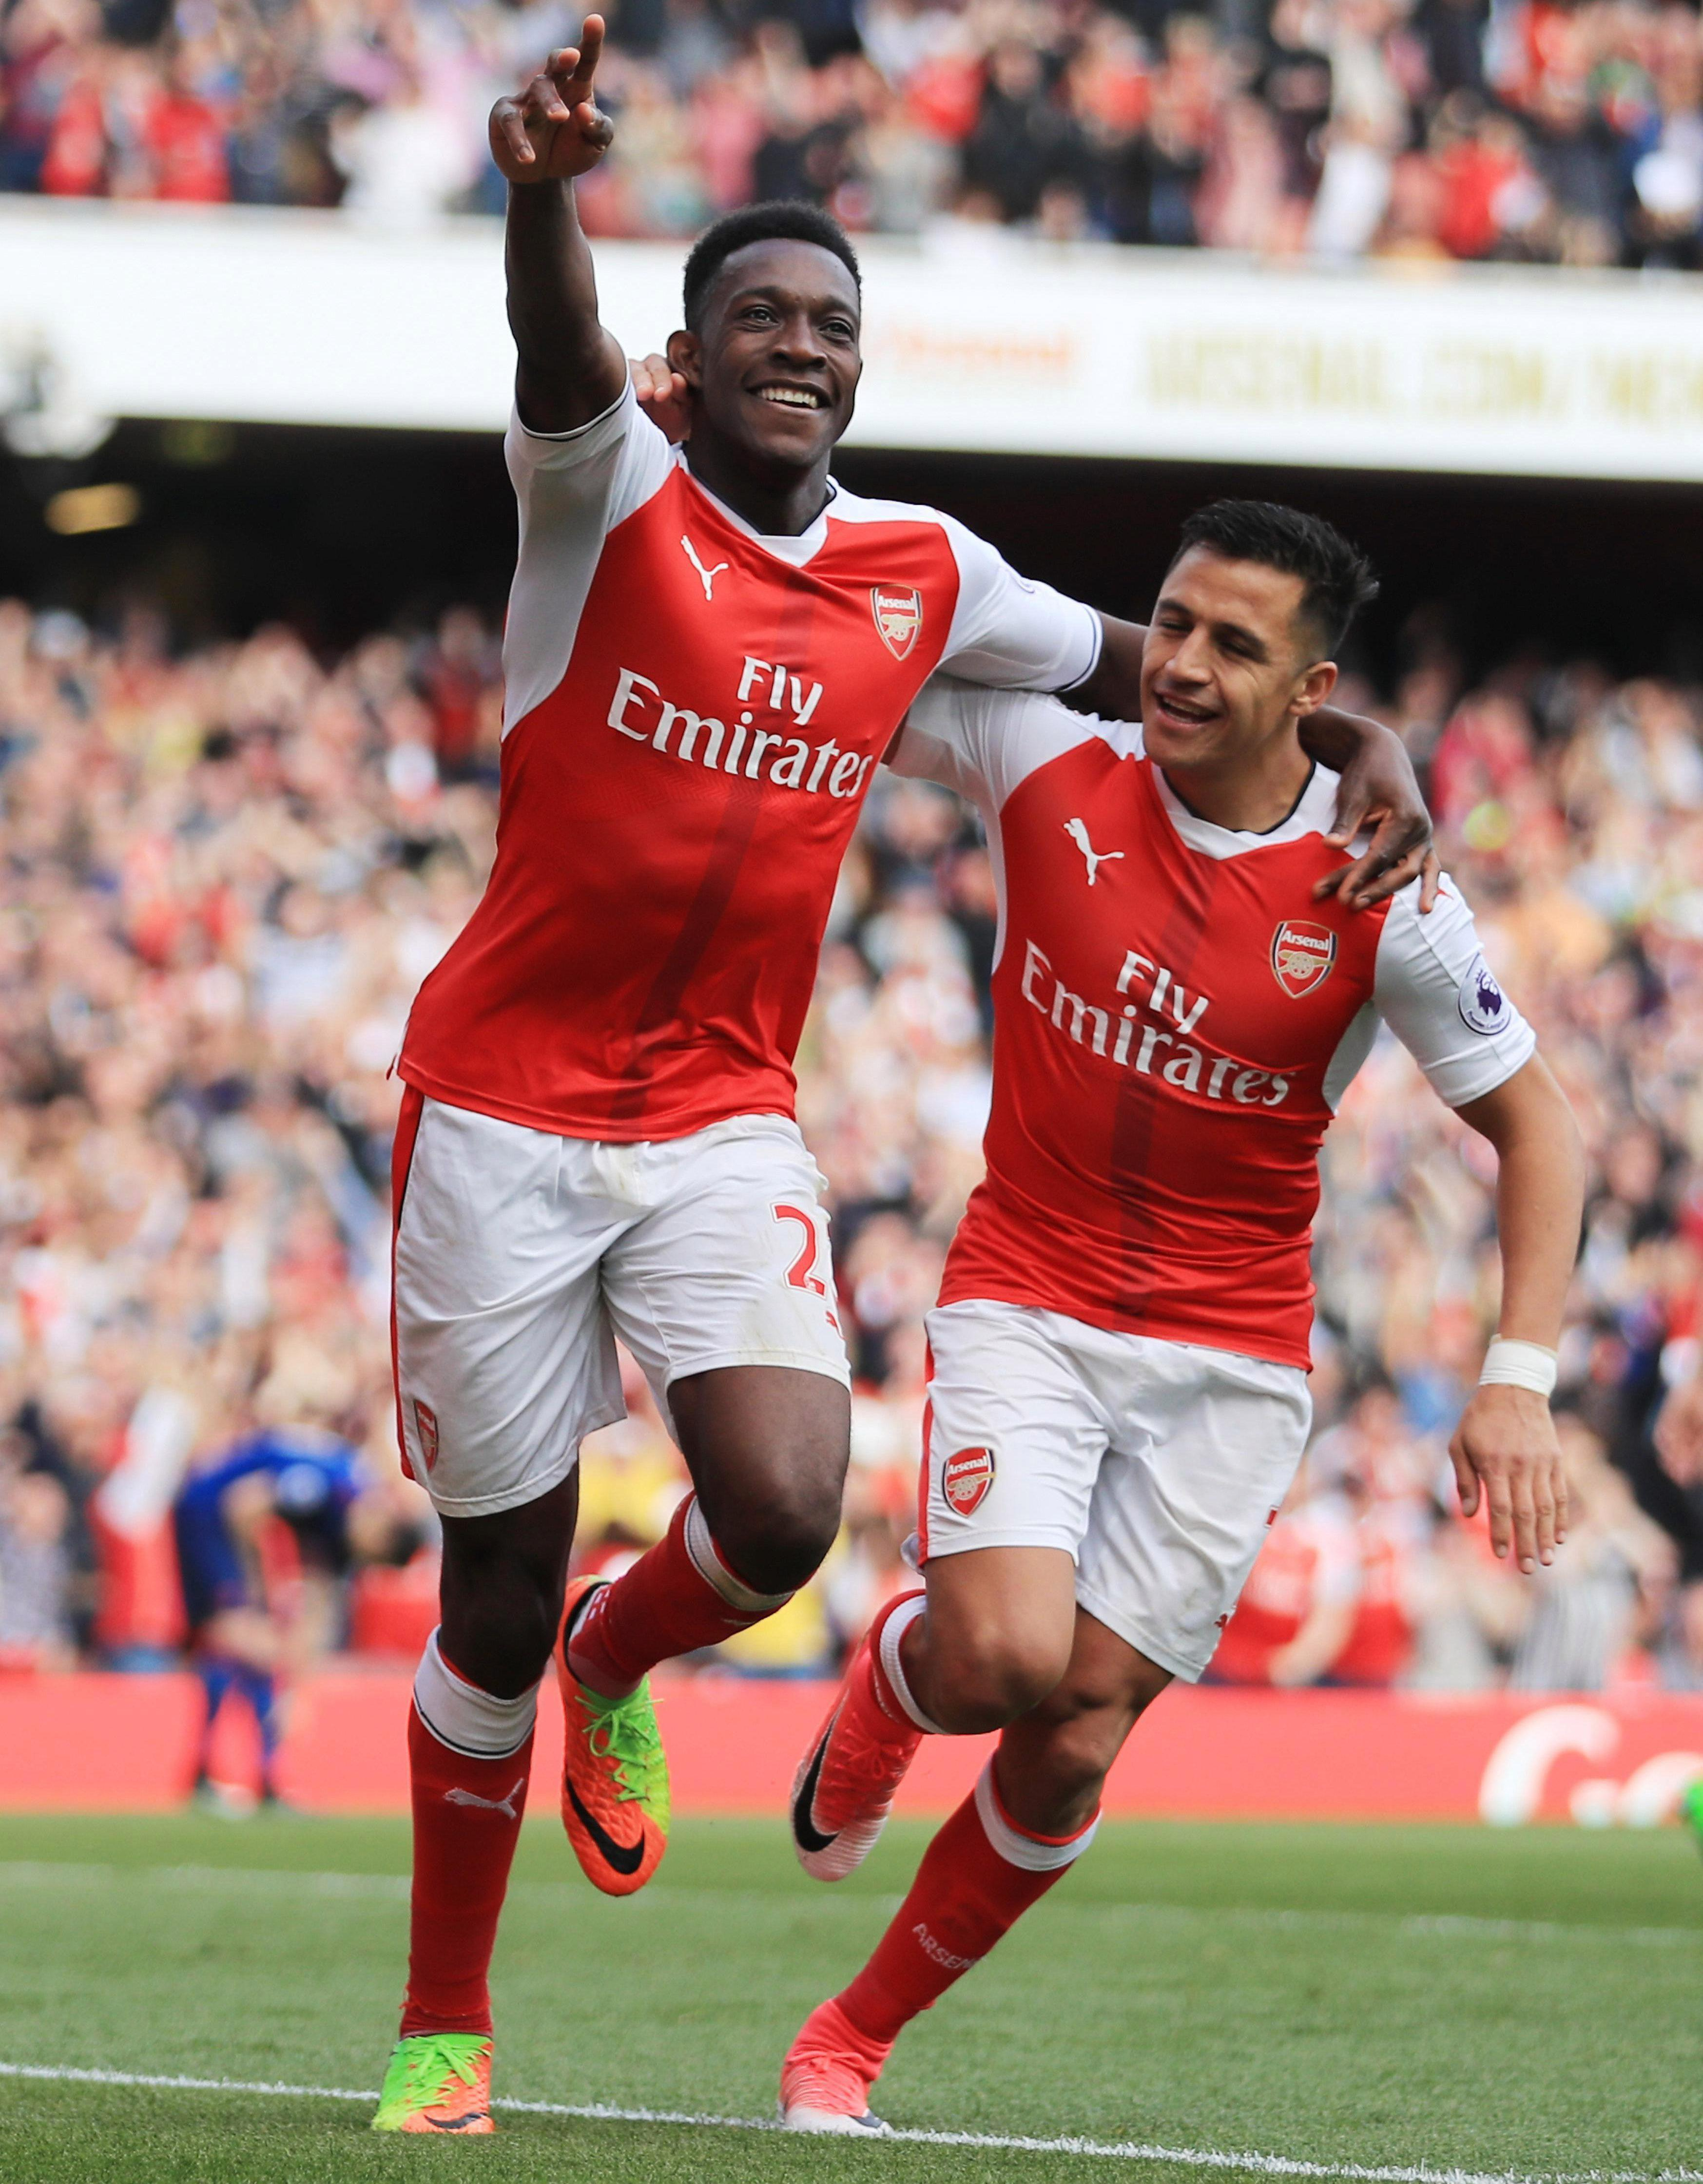 Danny Welbeck is one of Arsenals biggest home goal threats